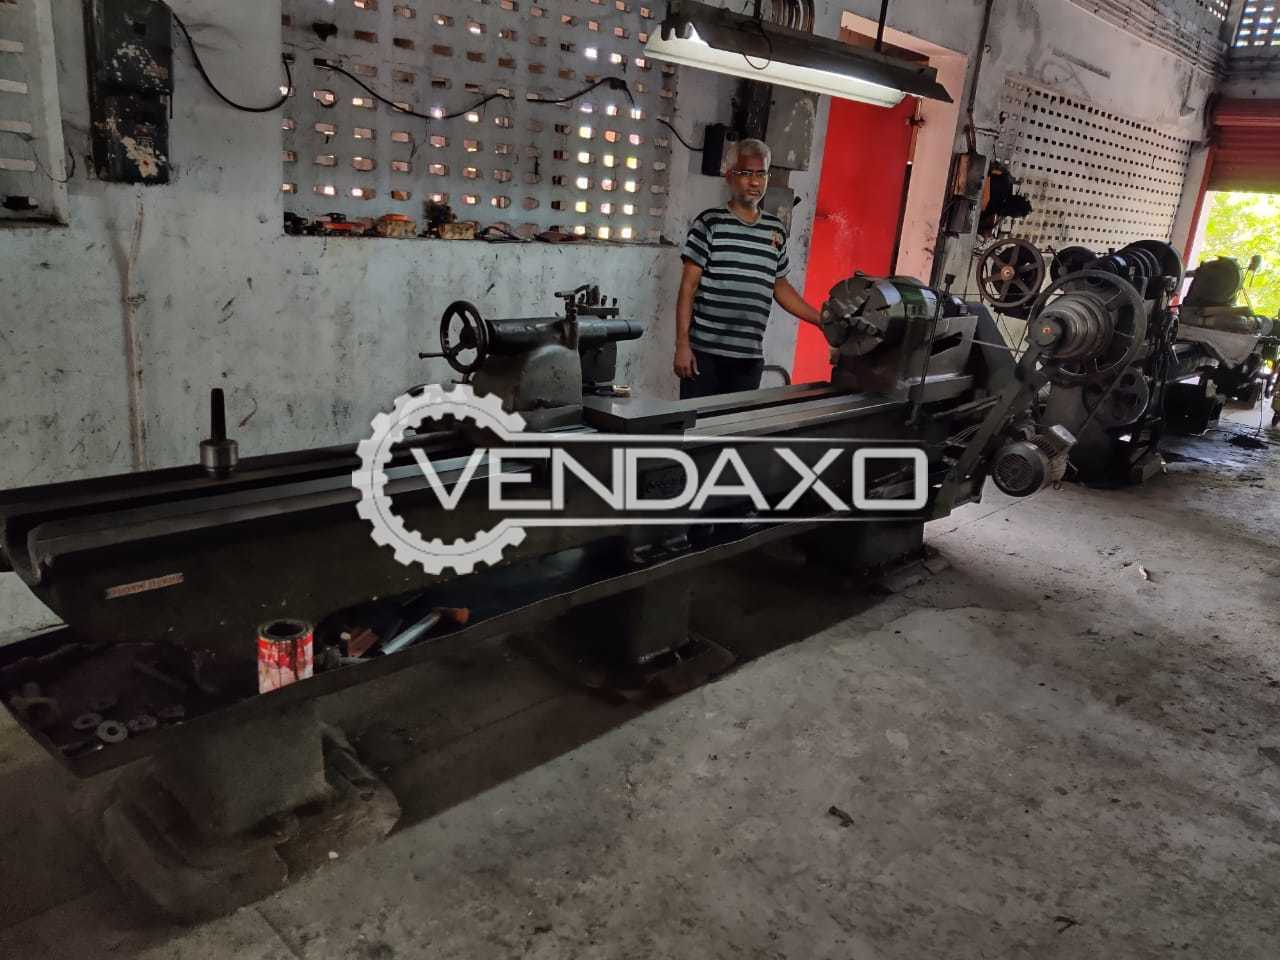 Available For Sale Lathe, Cylindrical Grinder, Mixing Mill, Welding, Baby Coal Boiler, Extruder, Lining, Compressor